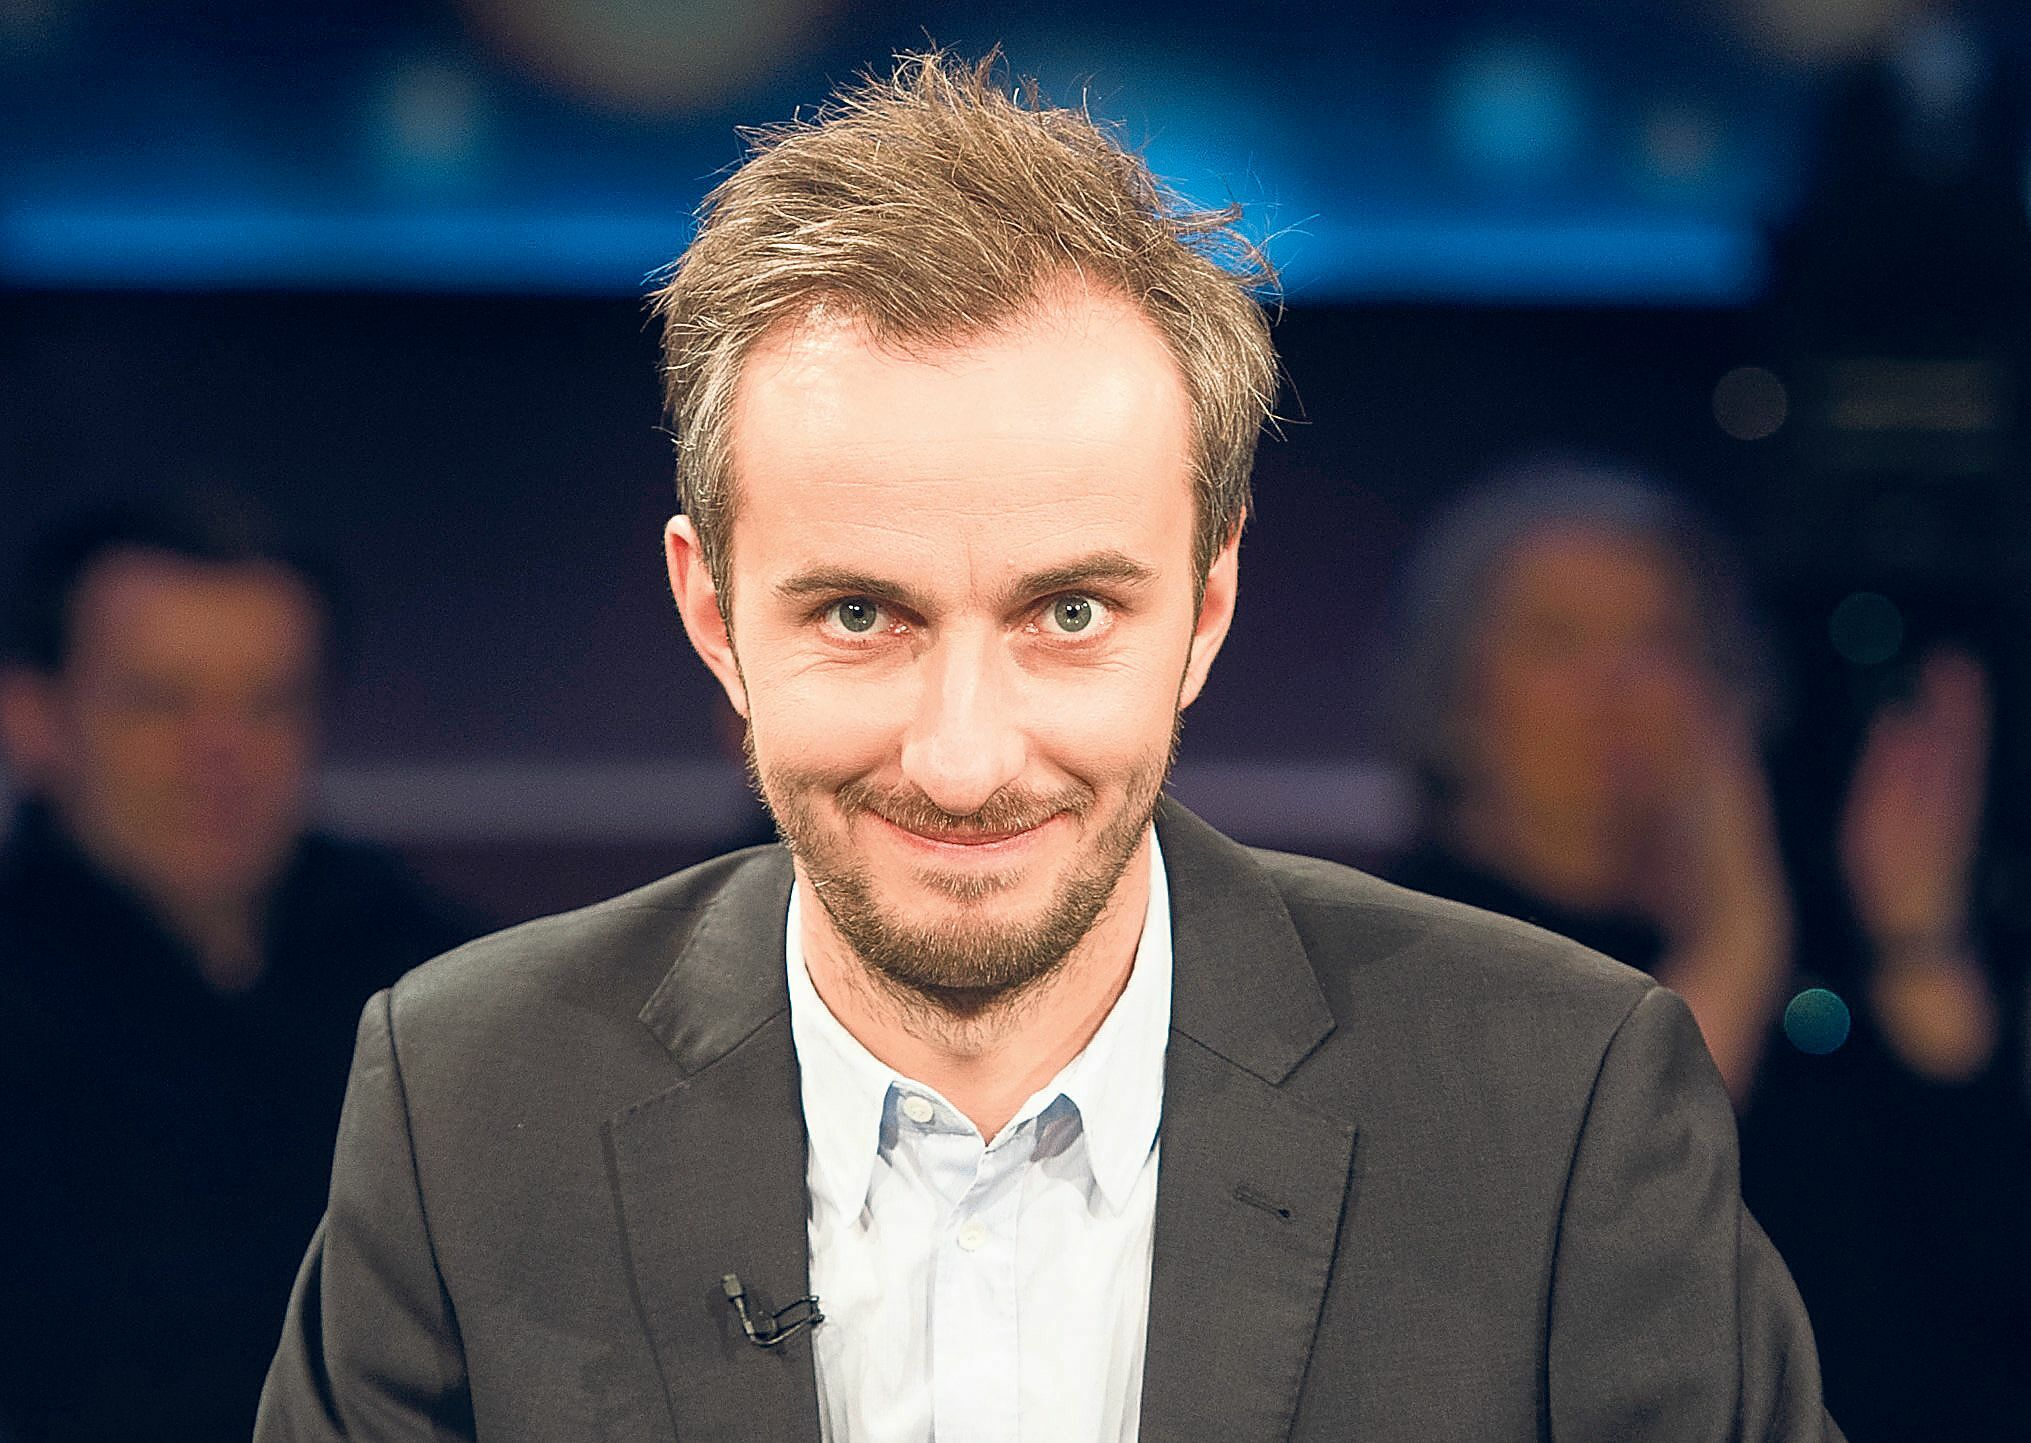 Satiriker Jan Böhmermann verklagt Angela Merkel